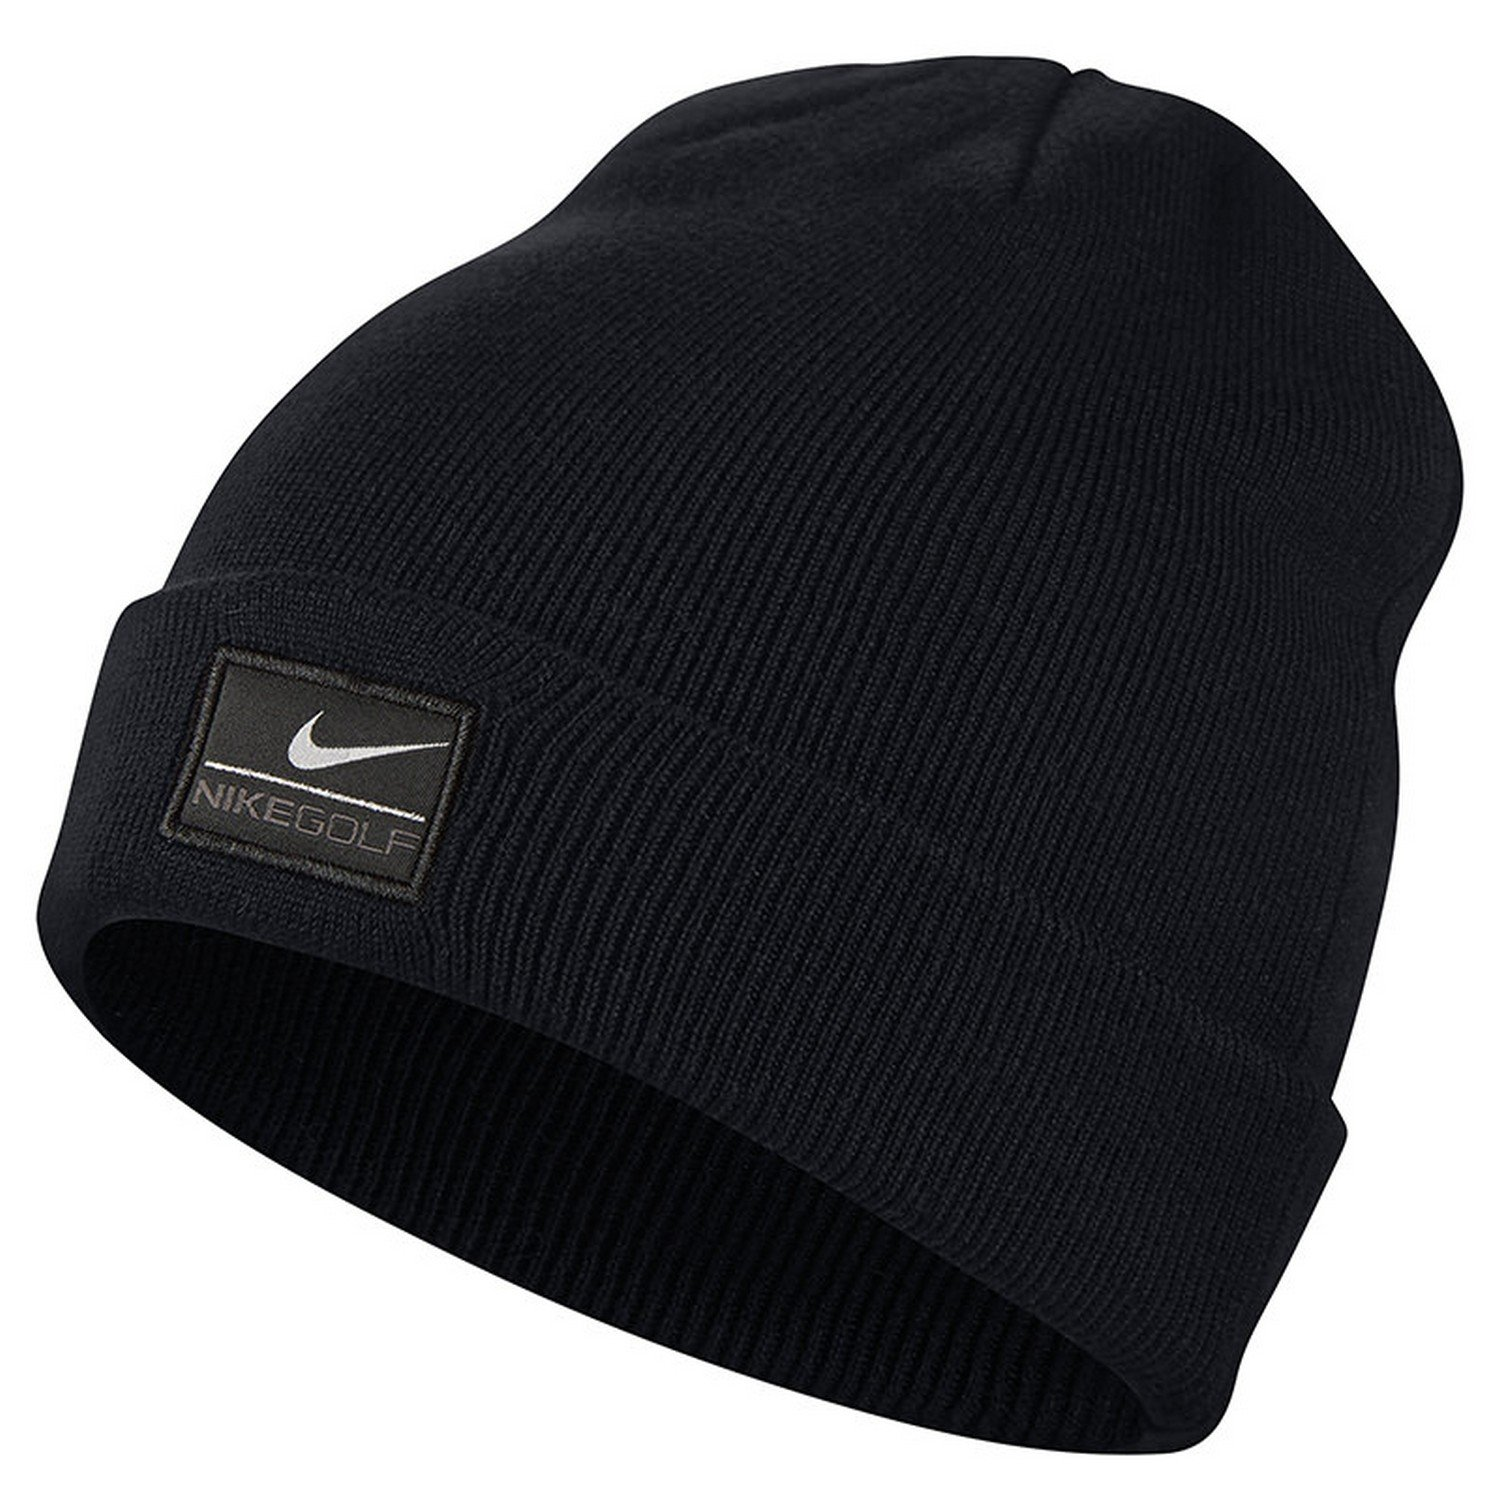 Nike Unisex Basic Knitted Winter Beanie Hat free shipping new winter unisex oversized slouch cap plicate baggy beanie knit crochet hot hat y107